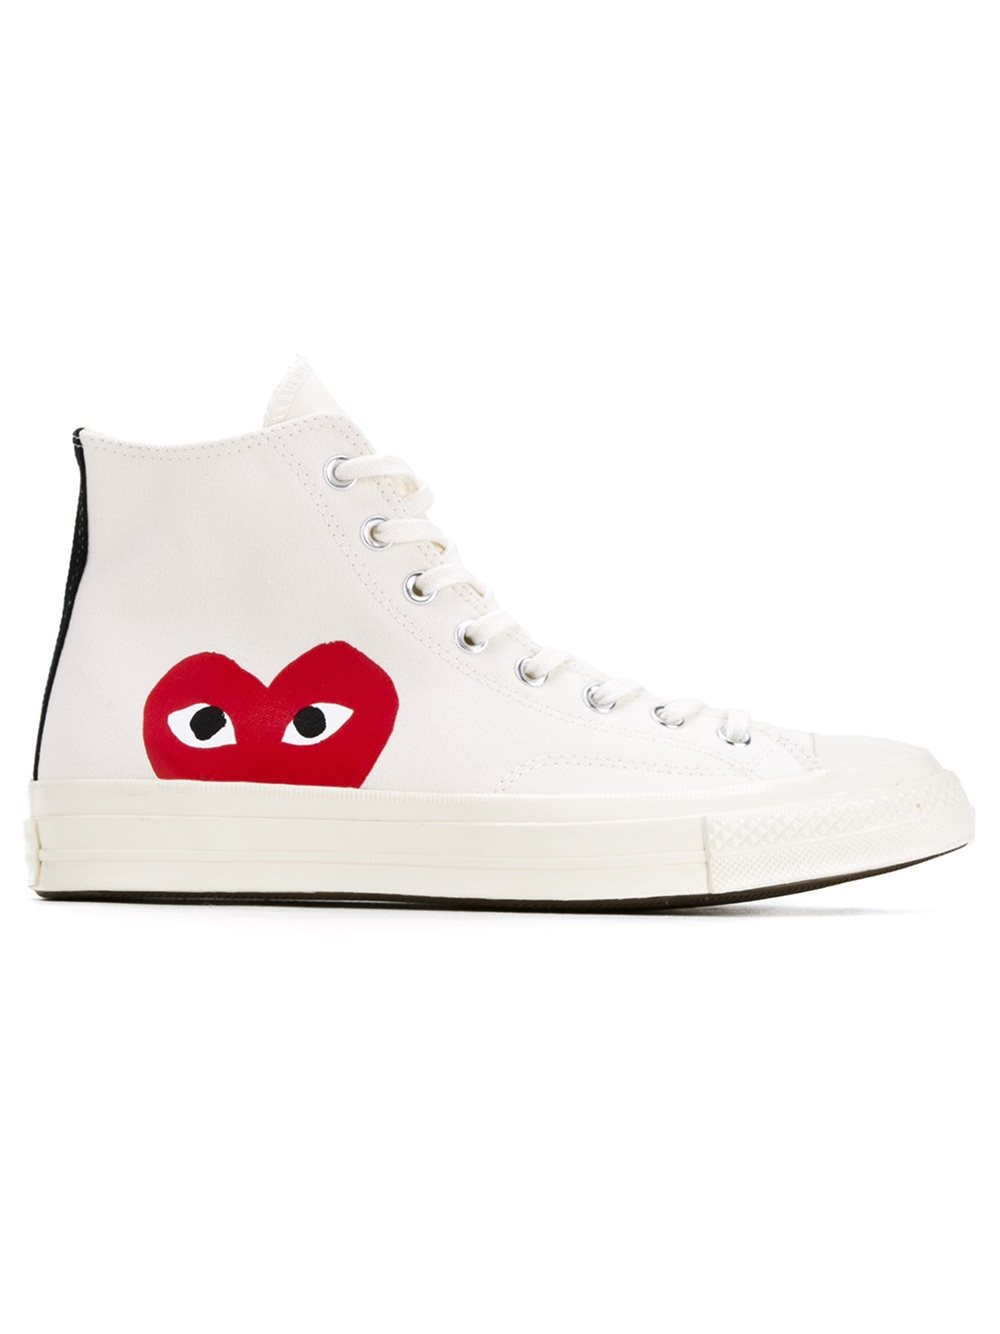 Des Blanches Converse Montantes Play Garçons Comme 2IeEYWHD9